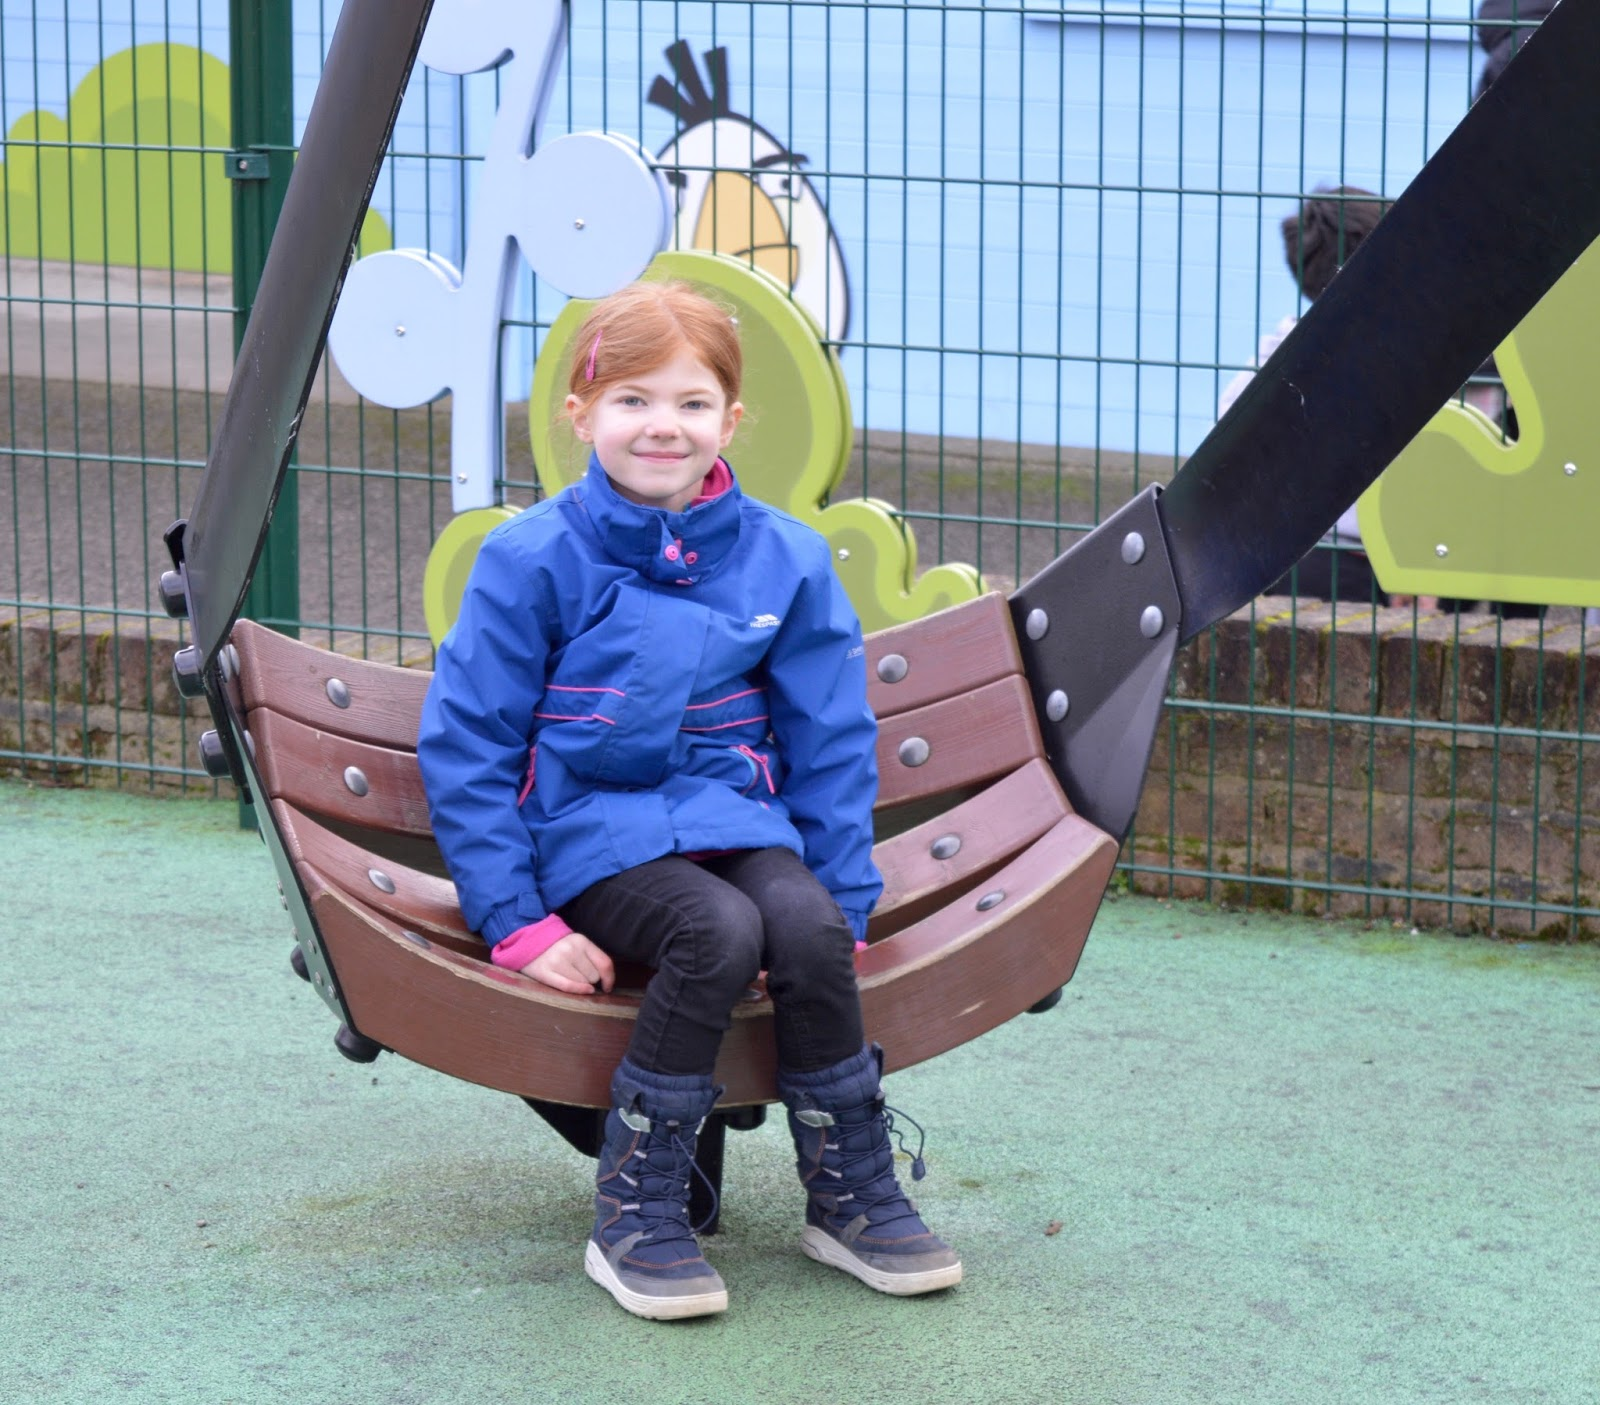 Visiting Angry Birds Activity Park at Lightwater Valley, North Yorkshire - sling shot seat